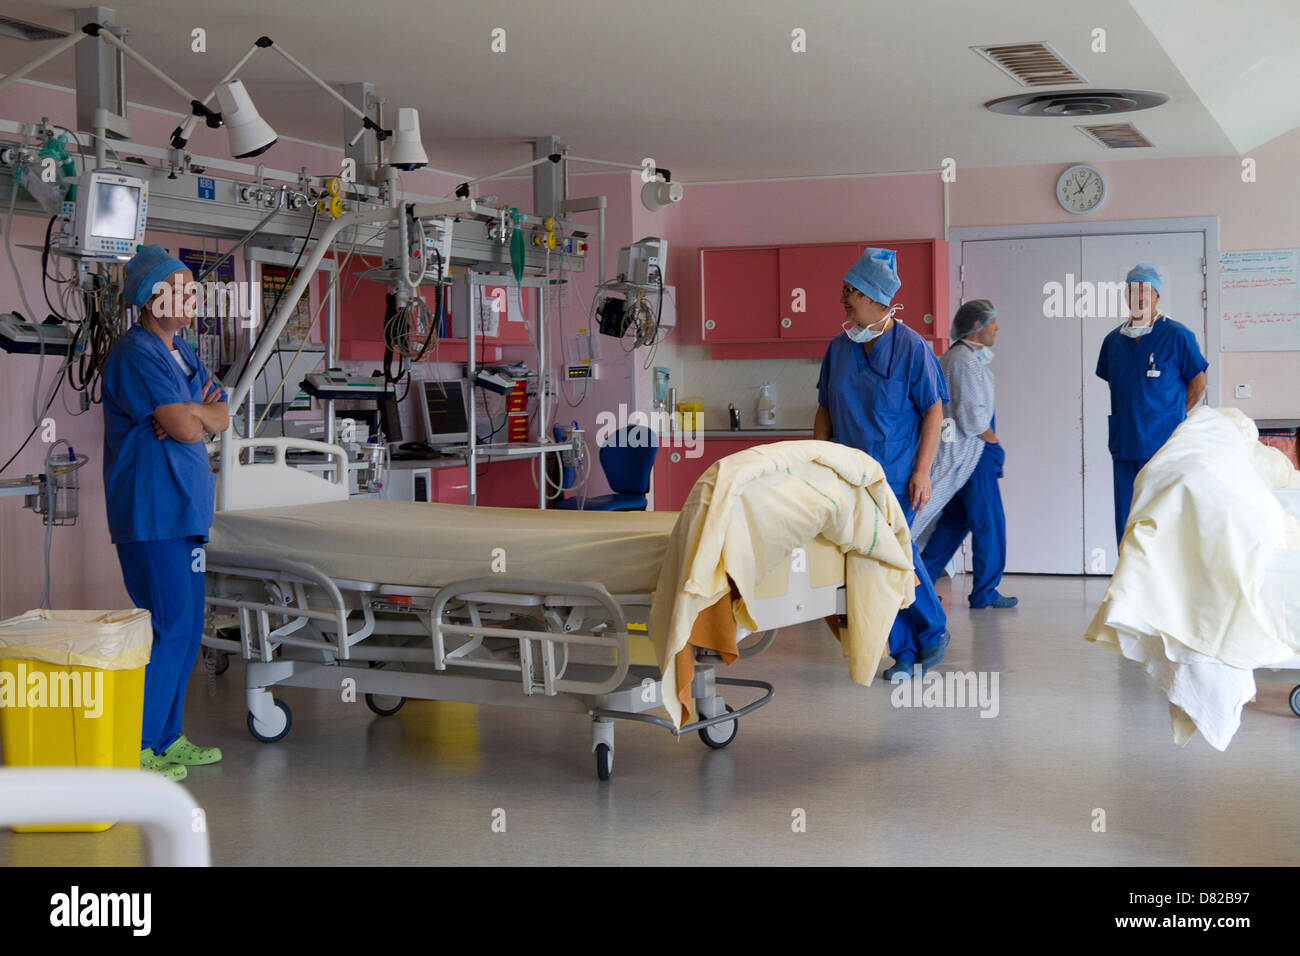 recovery room - Stock Image